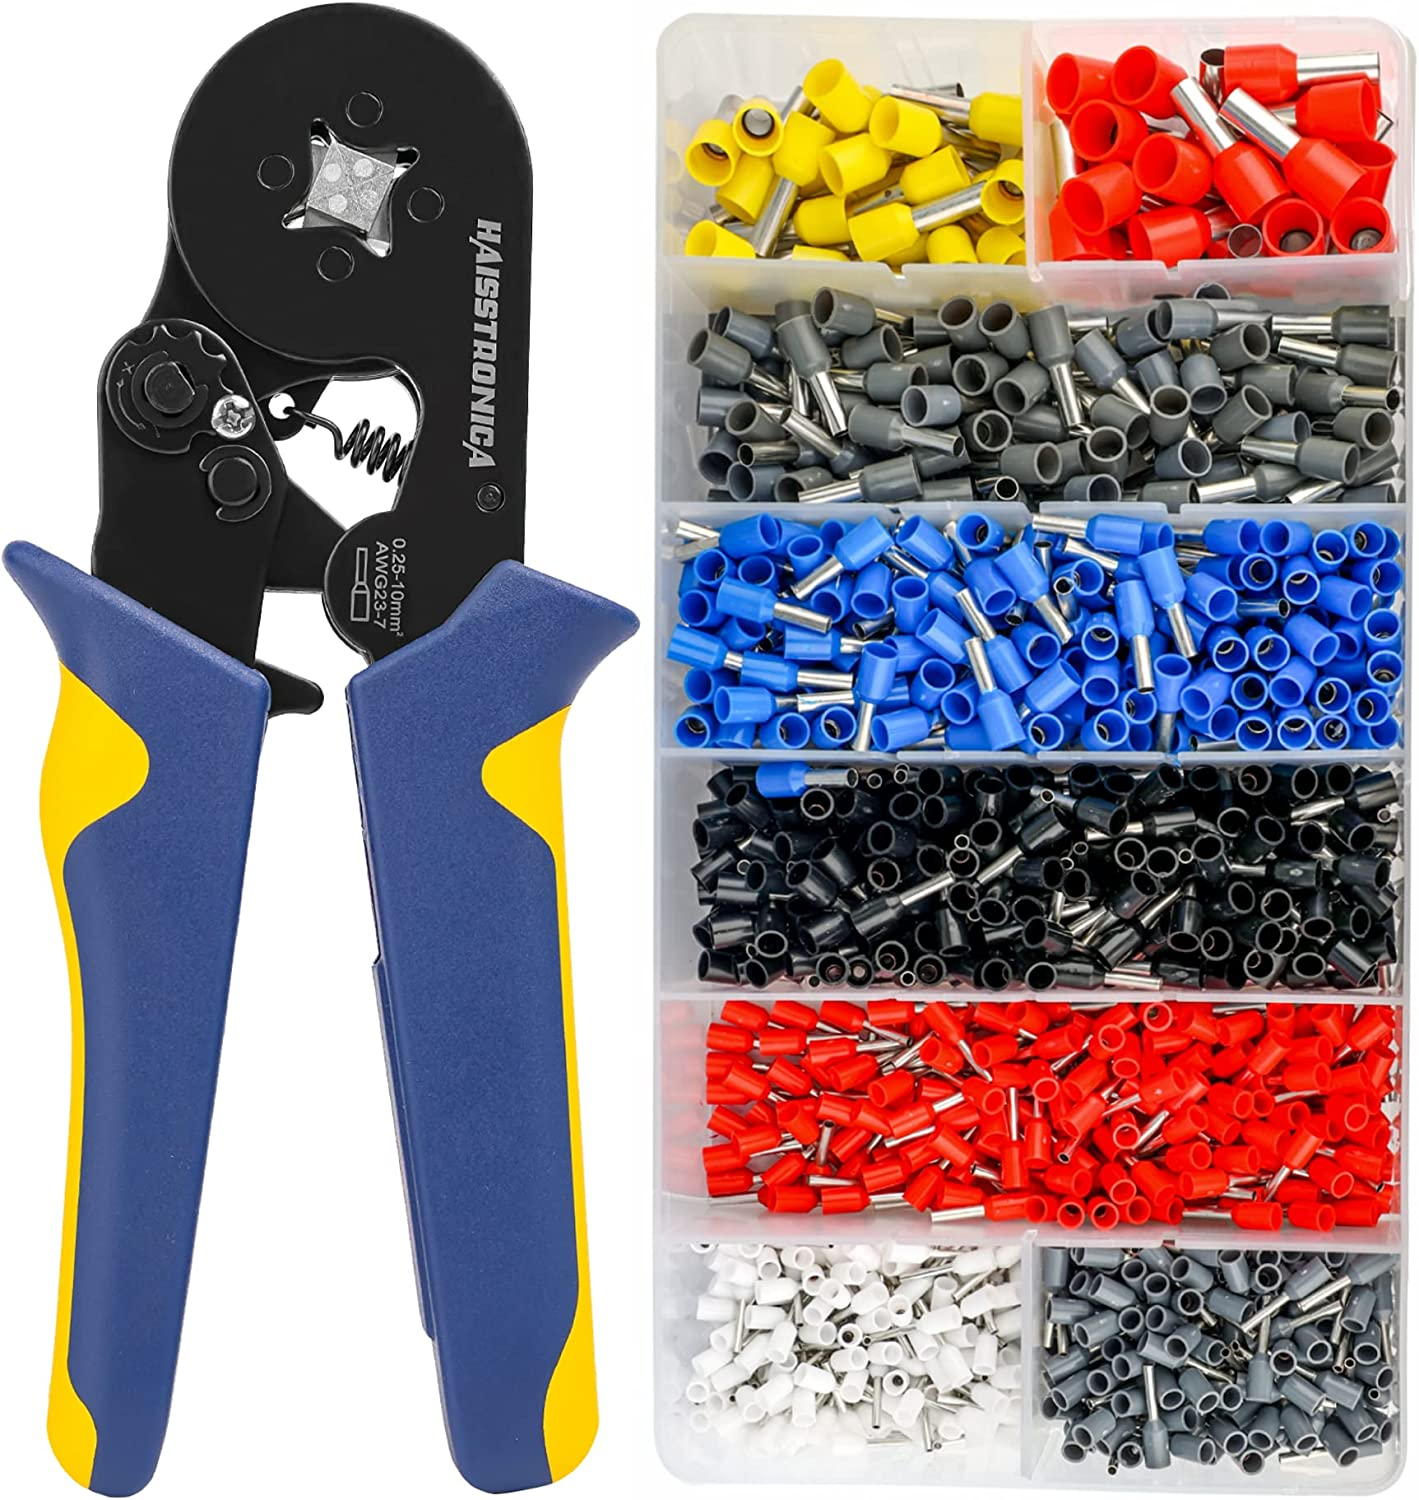 Haisstronica Ferrule Crimping Tool Our shop most popular Houston Mall Wir Self-Adjusting Square Kit